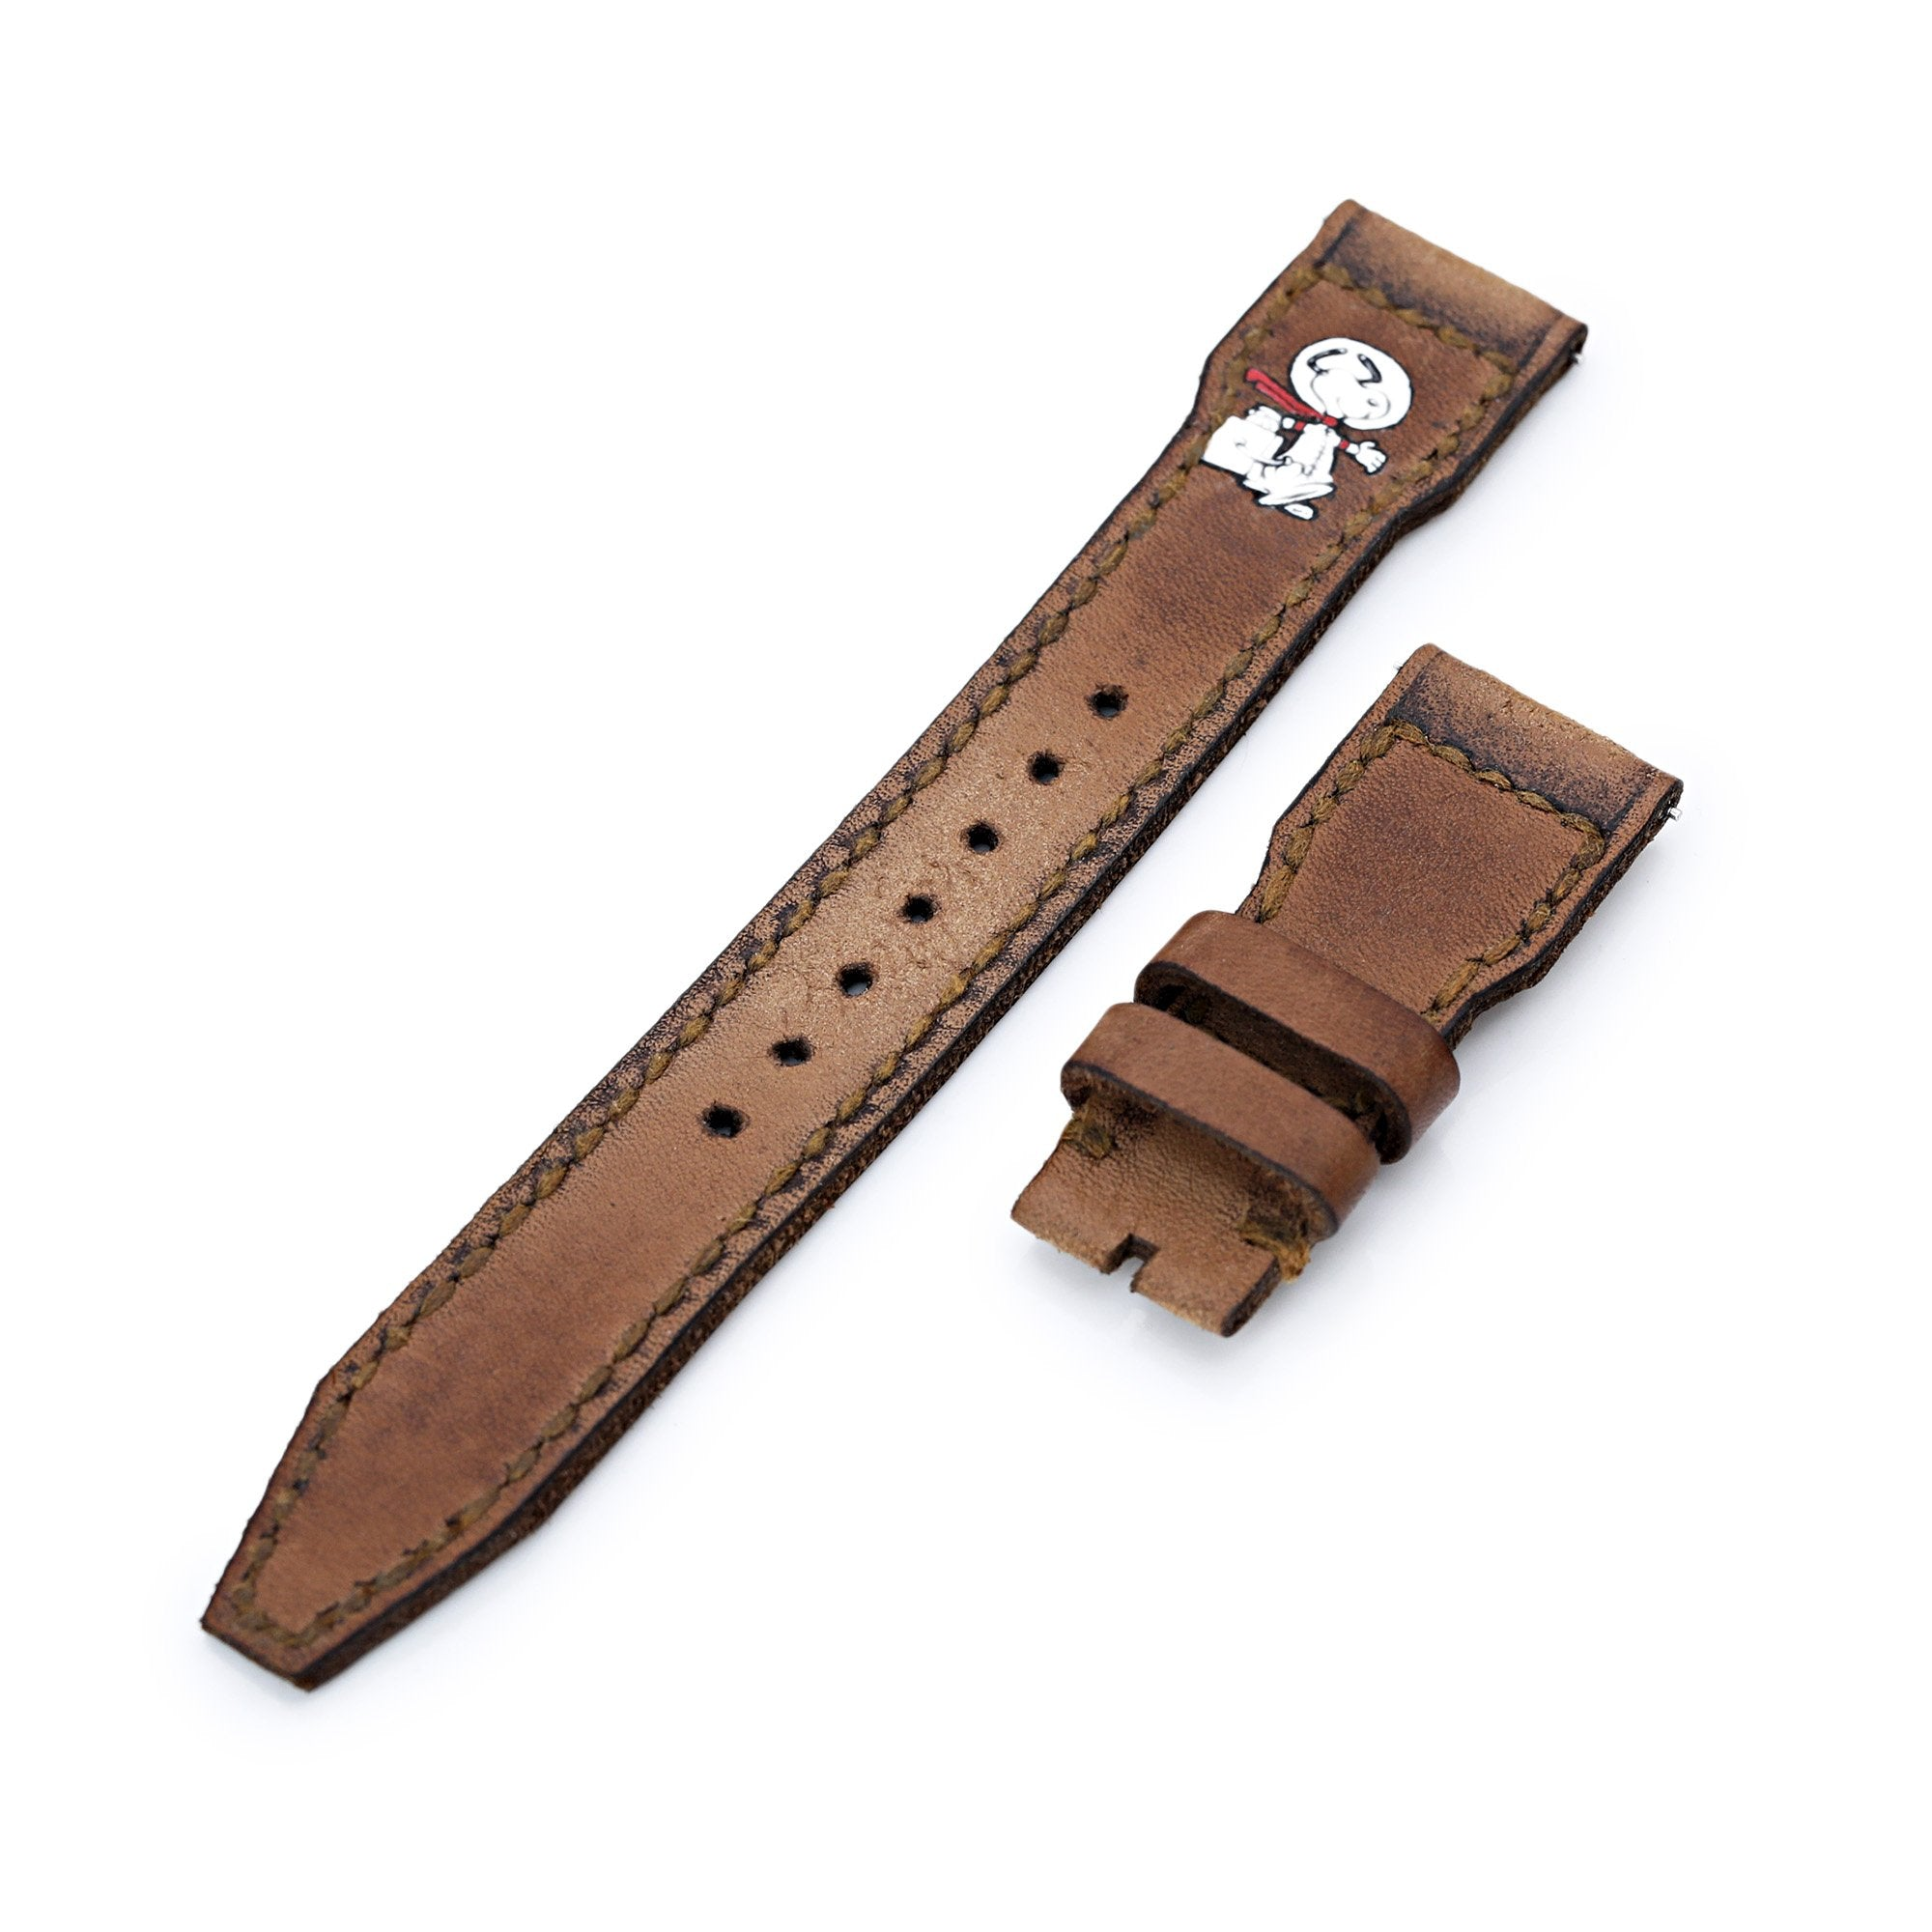 22mm Gunny X MT Light Brown Handmade for IWC Big Pilot Quick Release Leather Watch Strap Minimalist Snoopy Strapcode Watch Bands